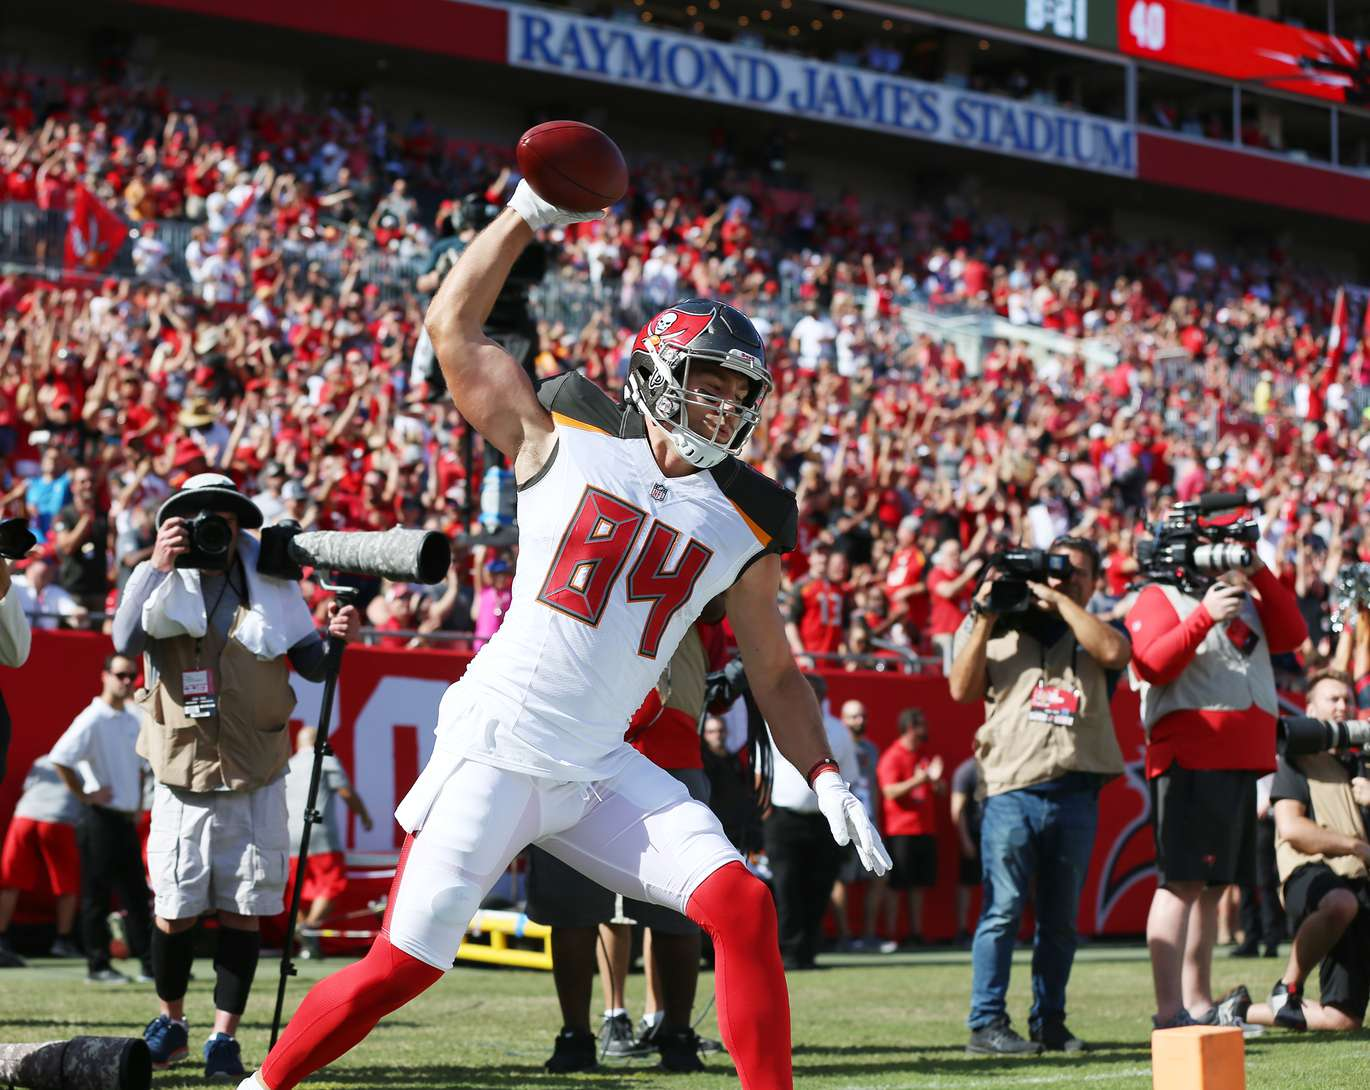 72050c3fe Photo Gallery: Game Action of the Buccaneers and 49ers Game | Tampa ...